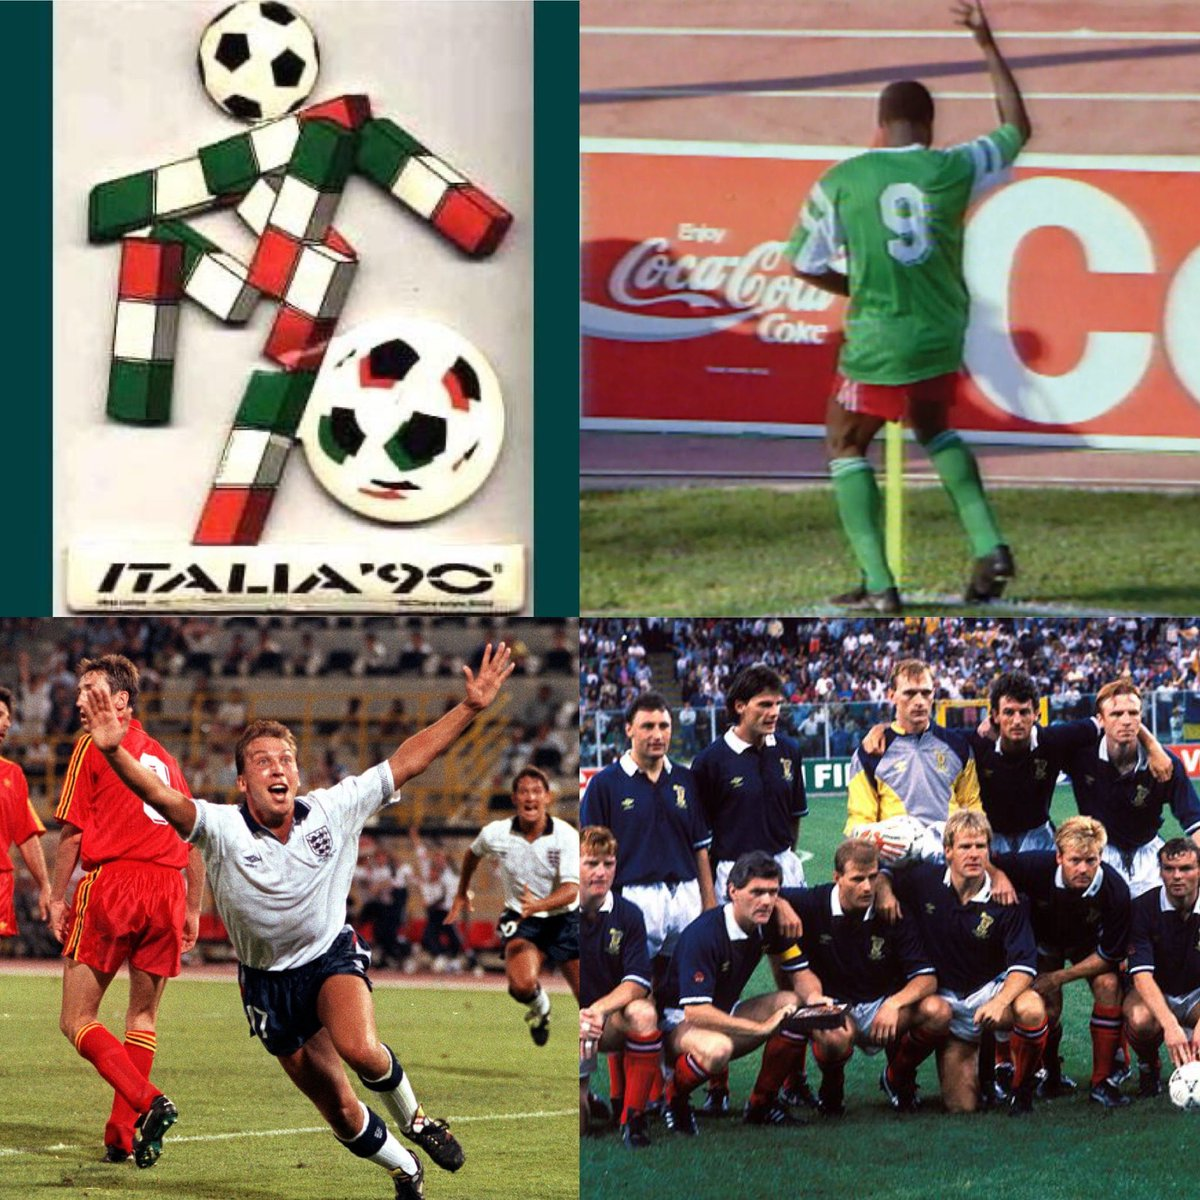 Very excited to announce that my very first documentary for @BBCRadio2 will air this Saturday at 8pm.  4th July is exactly 30yrs since England's semi-final defeat to W.Germany at the 1990 World Cup  In 'Passion, Penalties & Pavarotti' we relive the music + memories of Italia 90⚽️ https://t.co/TMBZsIBtYU